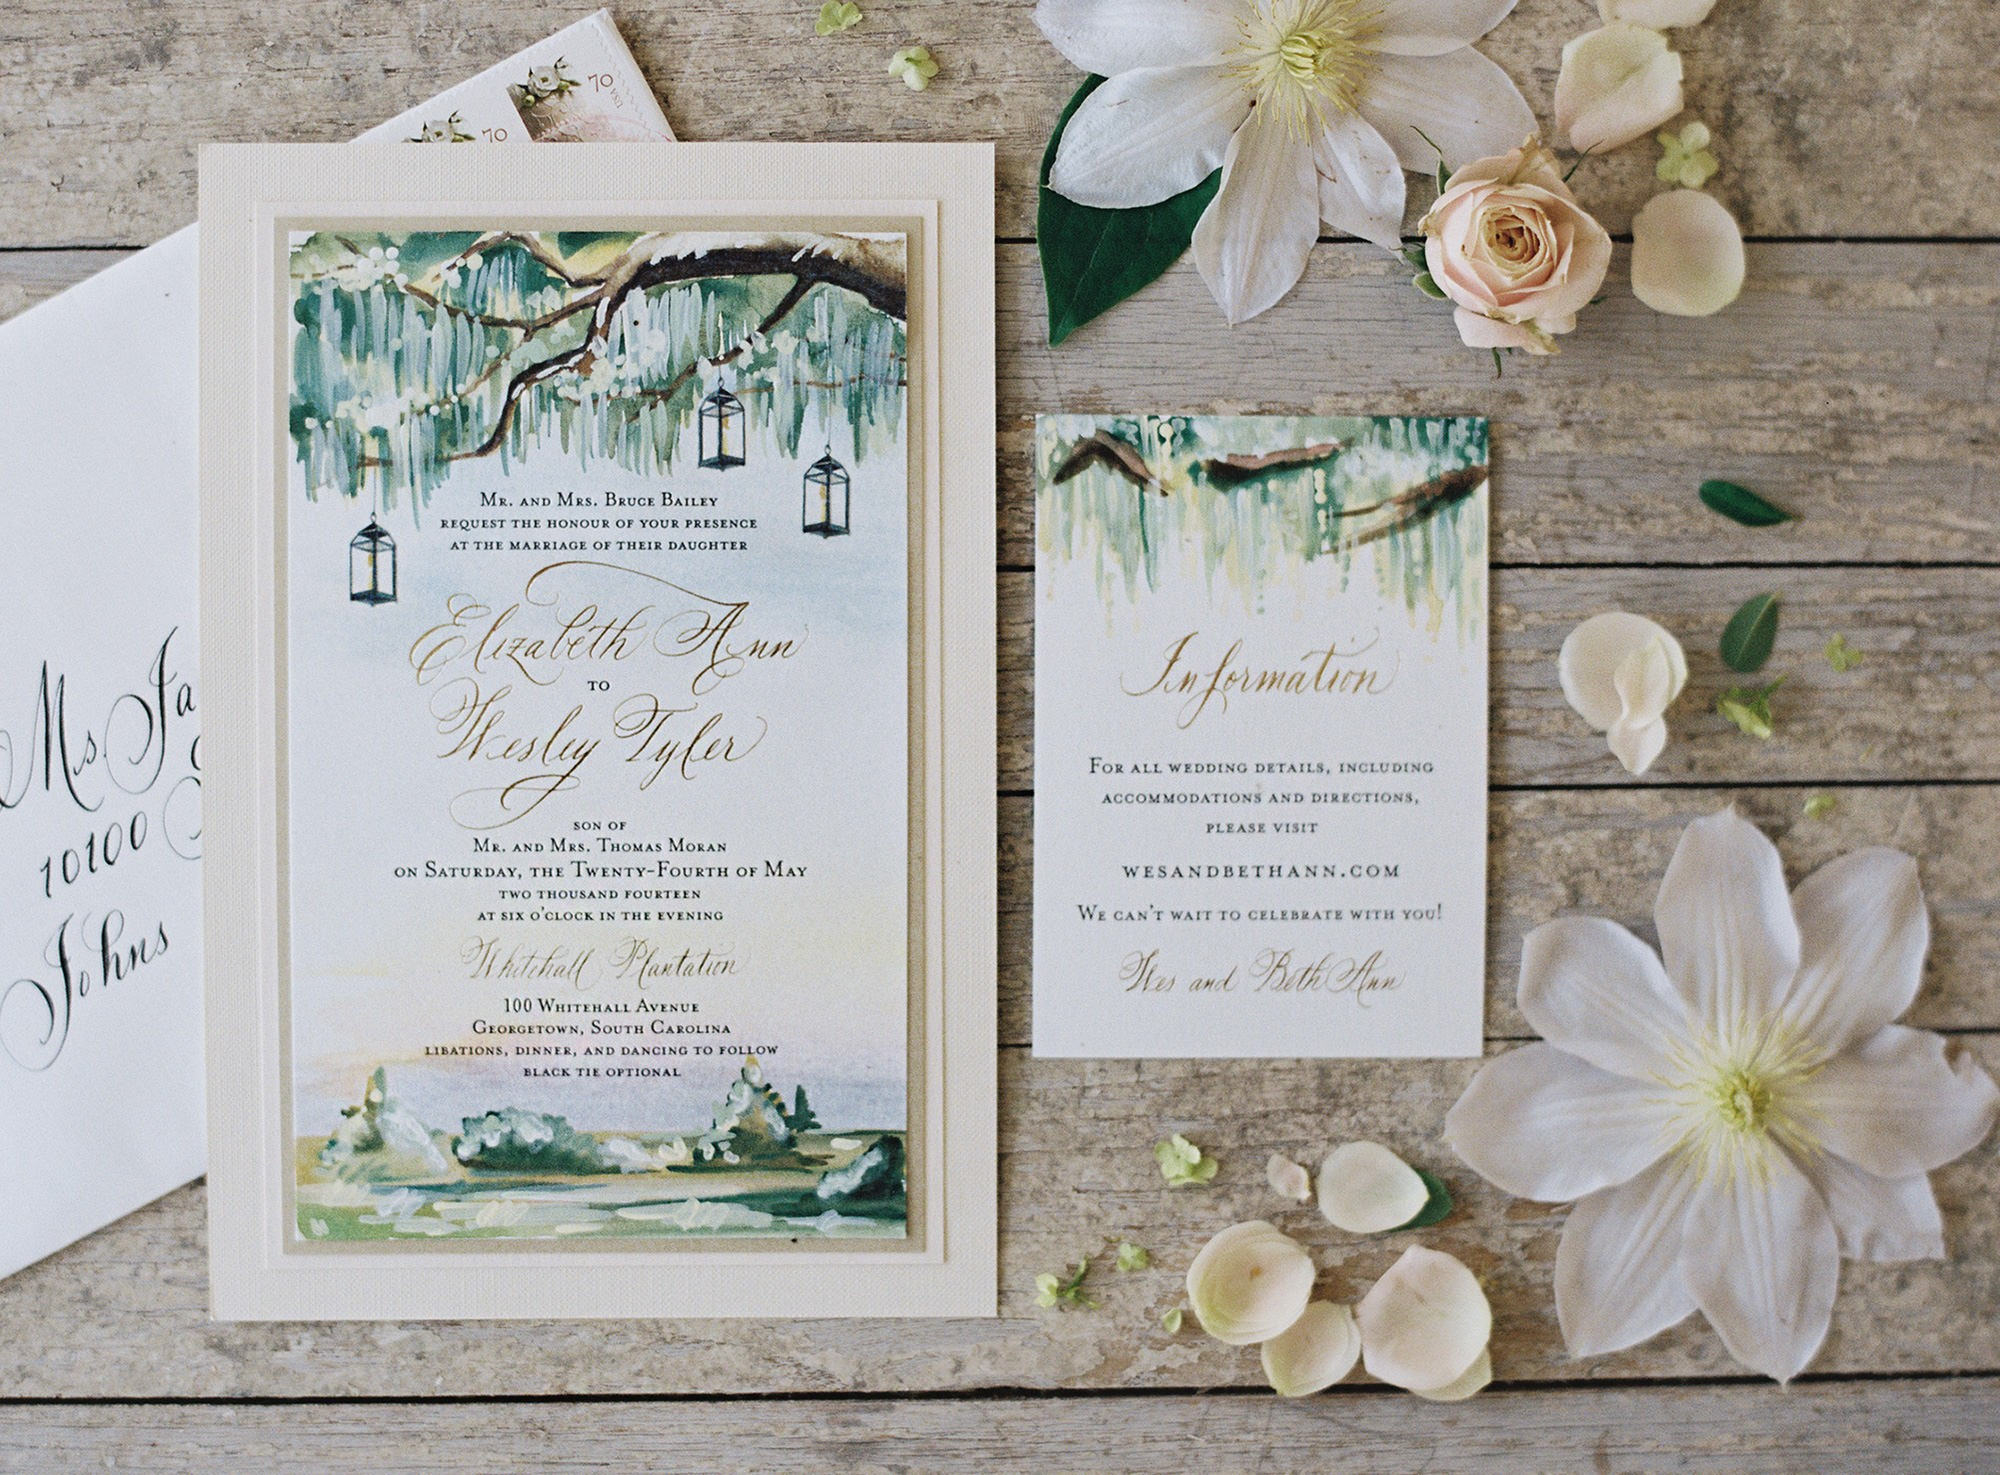 WEDDING GUEST DOS AND DON'TS | SocialAndPersonalWeddings ie